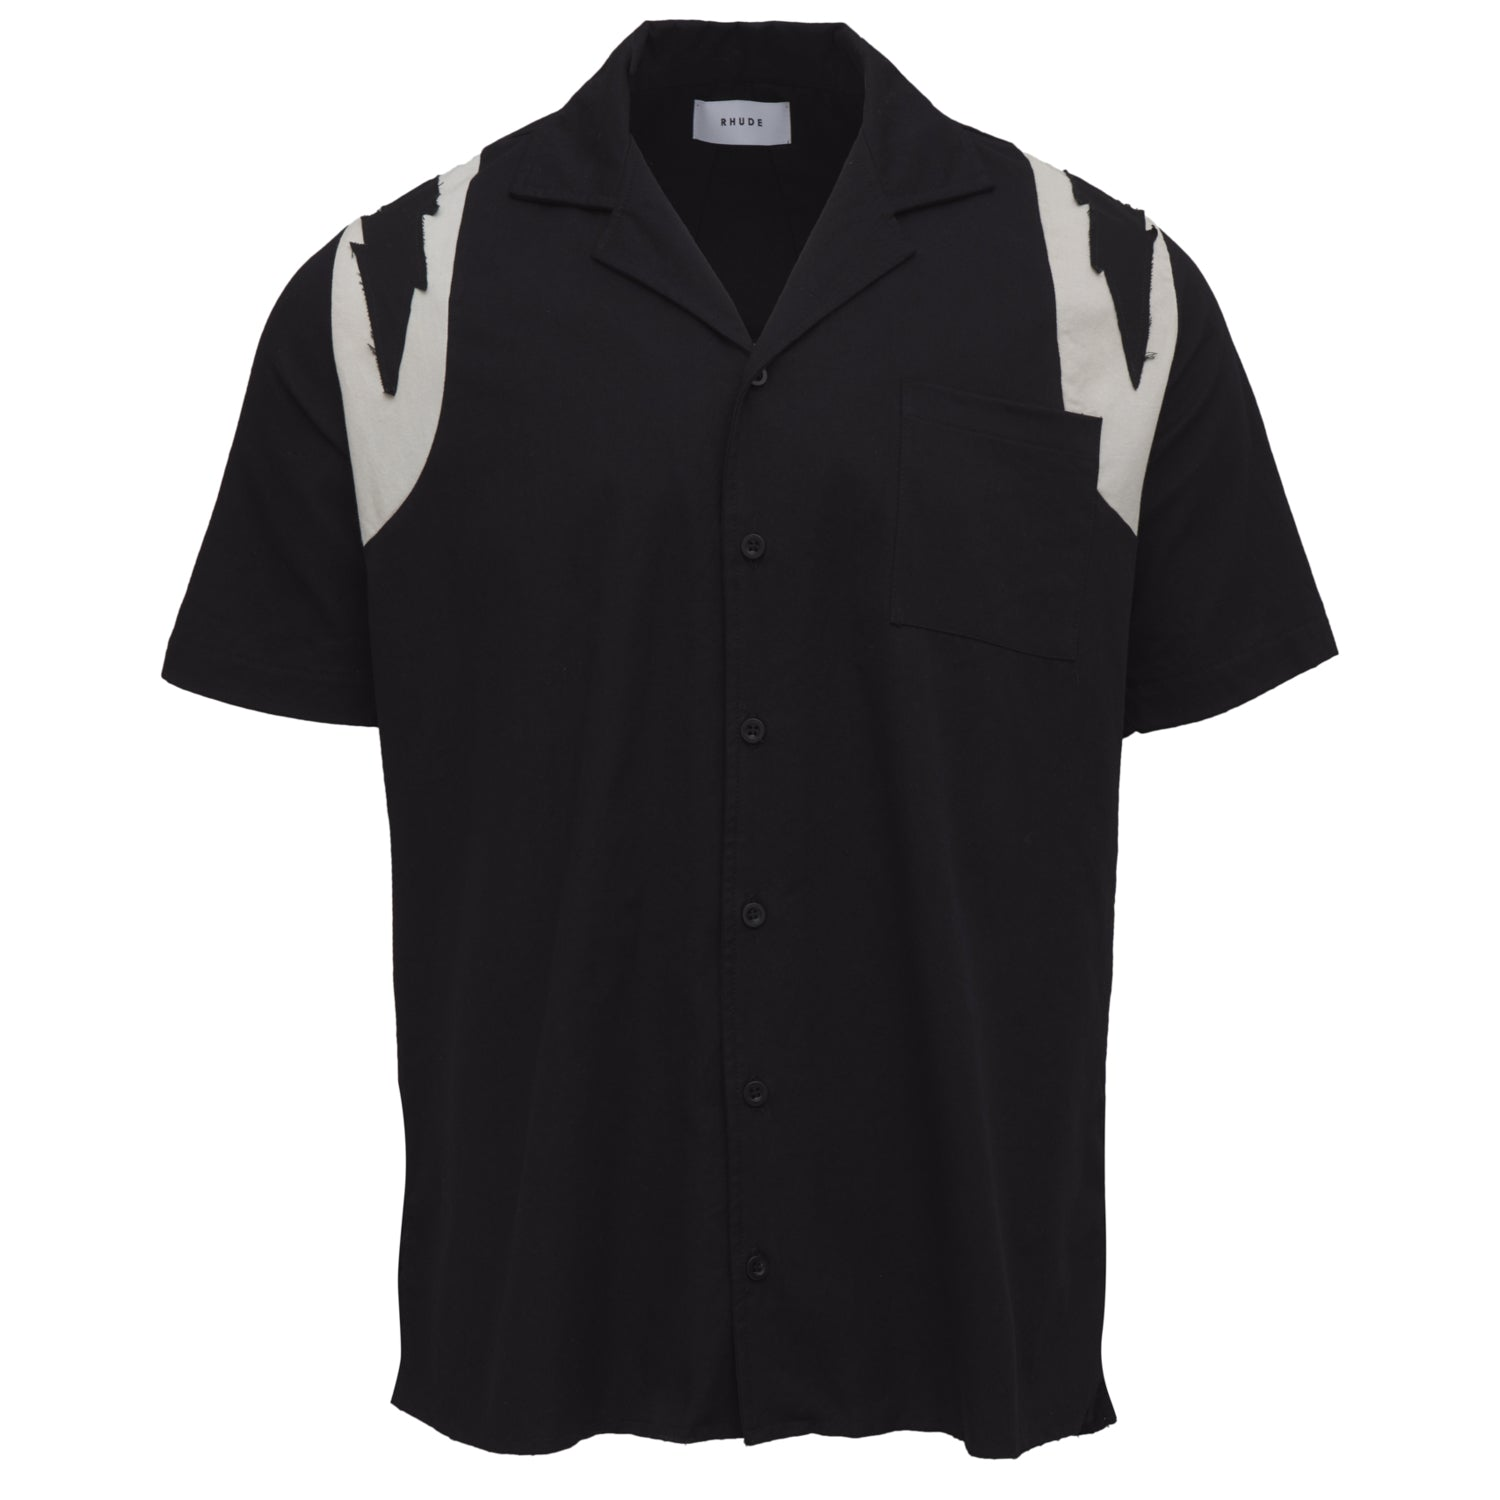 LIGHTNING SS HAWAIIAN BOWLING SHIRT